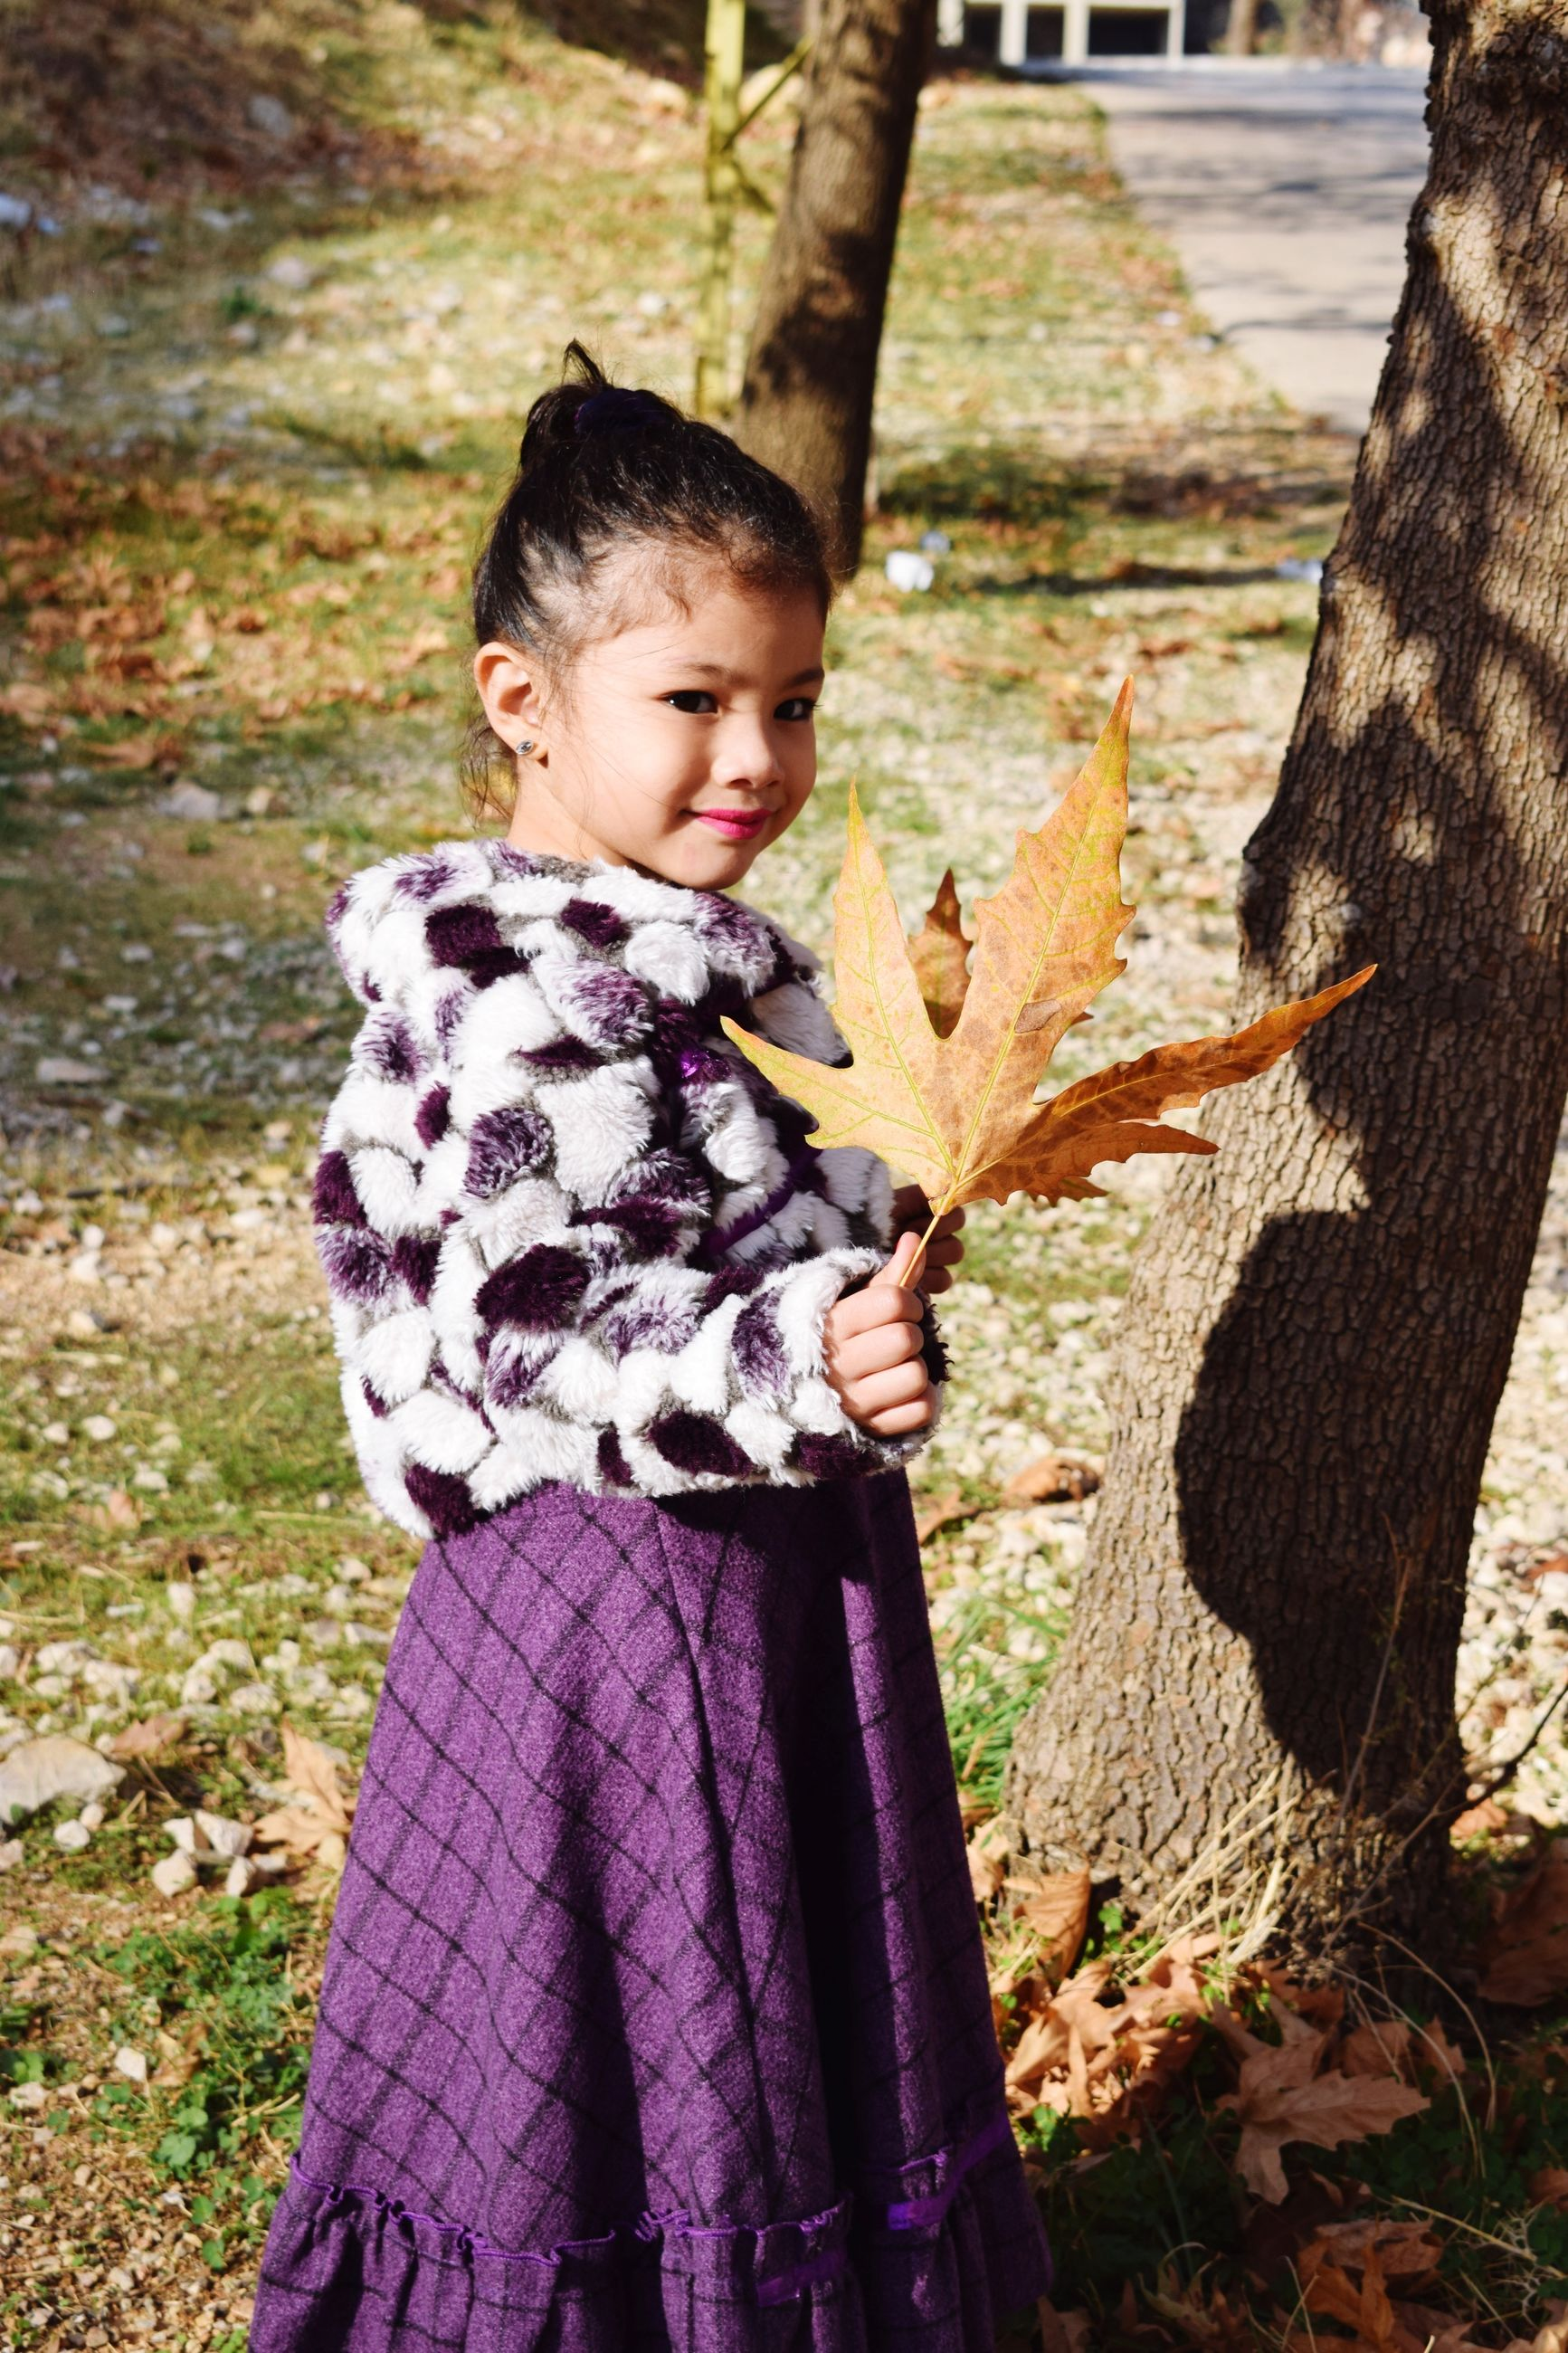 childhood, tree trunk, one person, holding, children only, outdoors, child, day, tree, people, human hand, animal themes, close-up